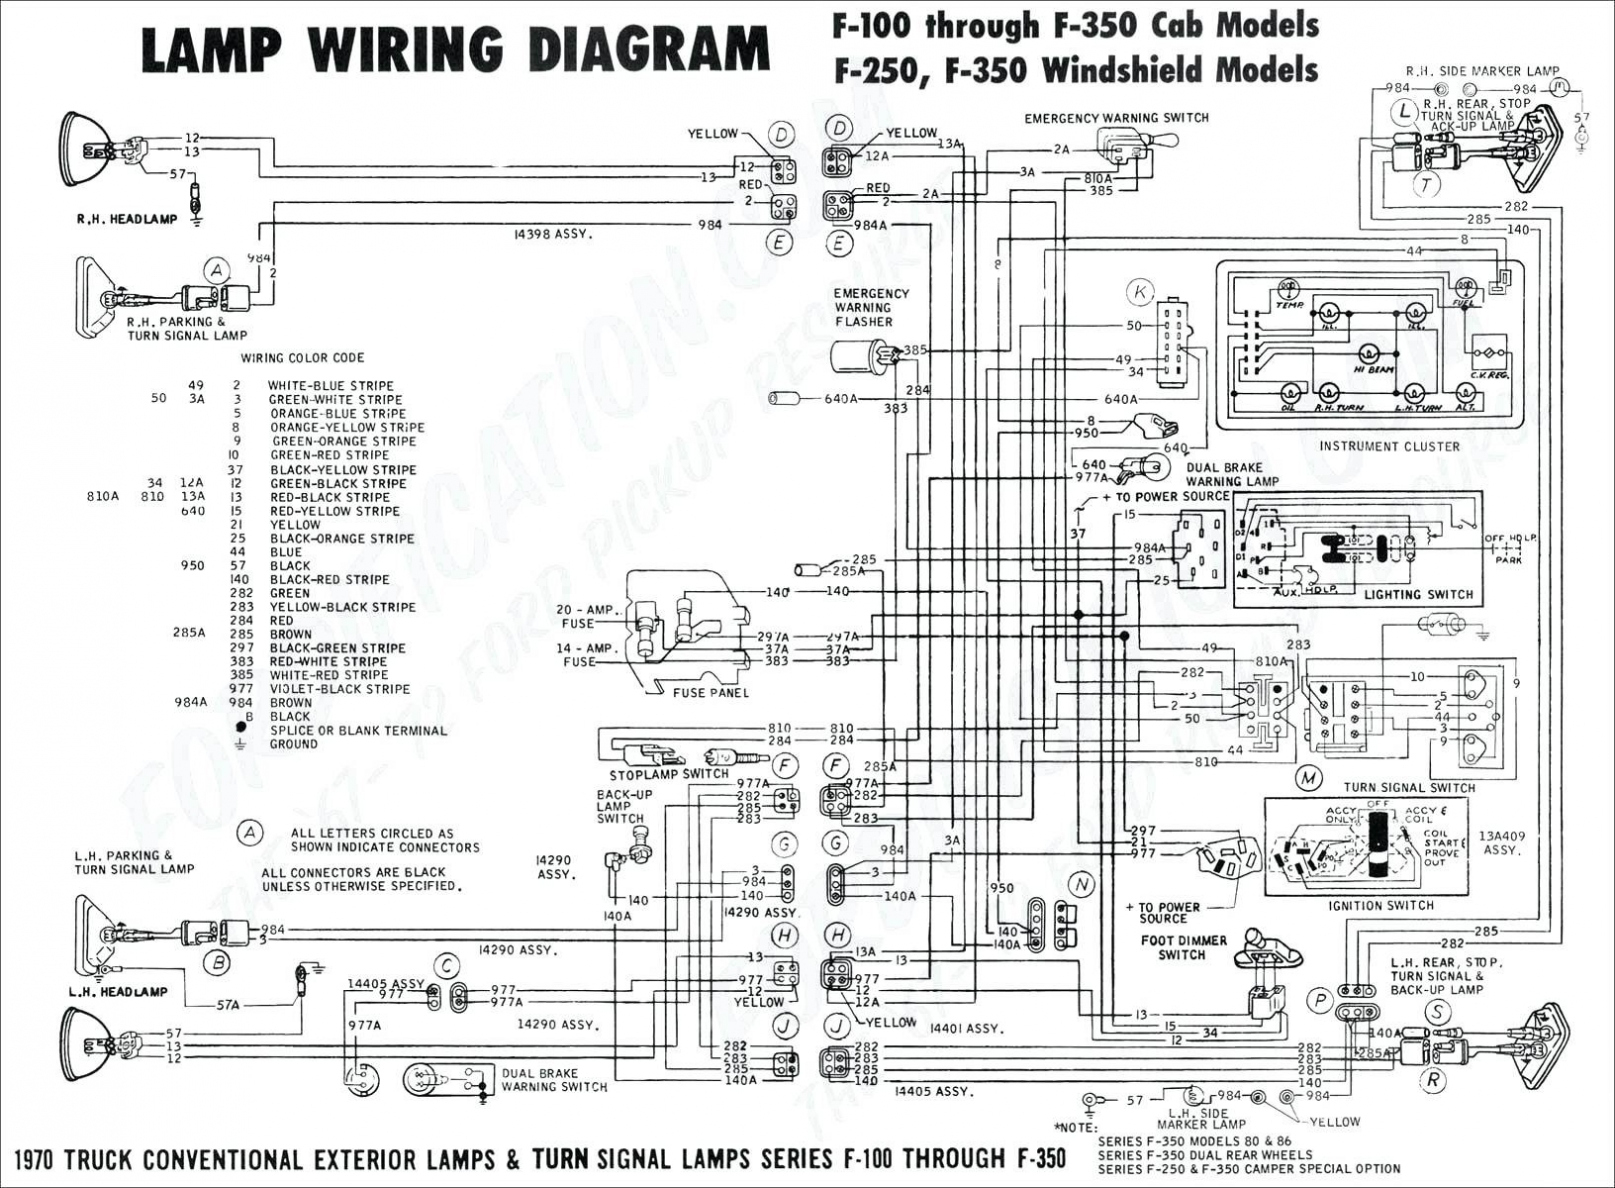 supermax wiring diagram wiring schematic diagram 184 skematic co Dewalt DC500 Wiring-Diagram